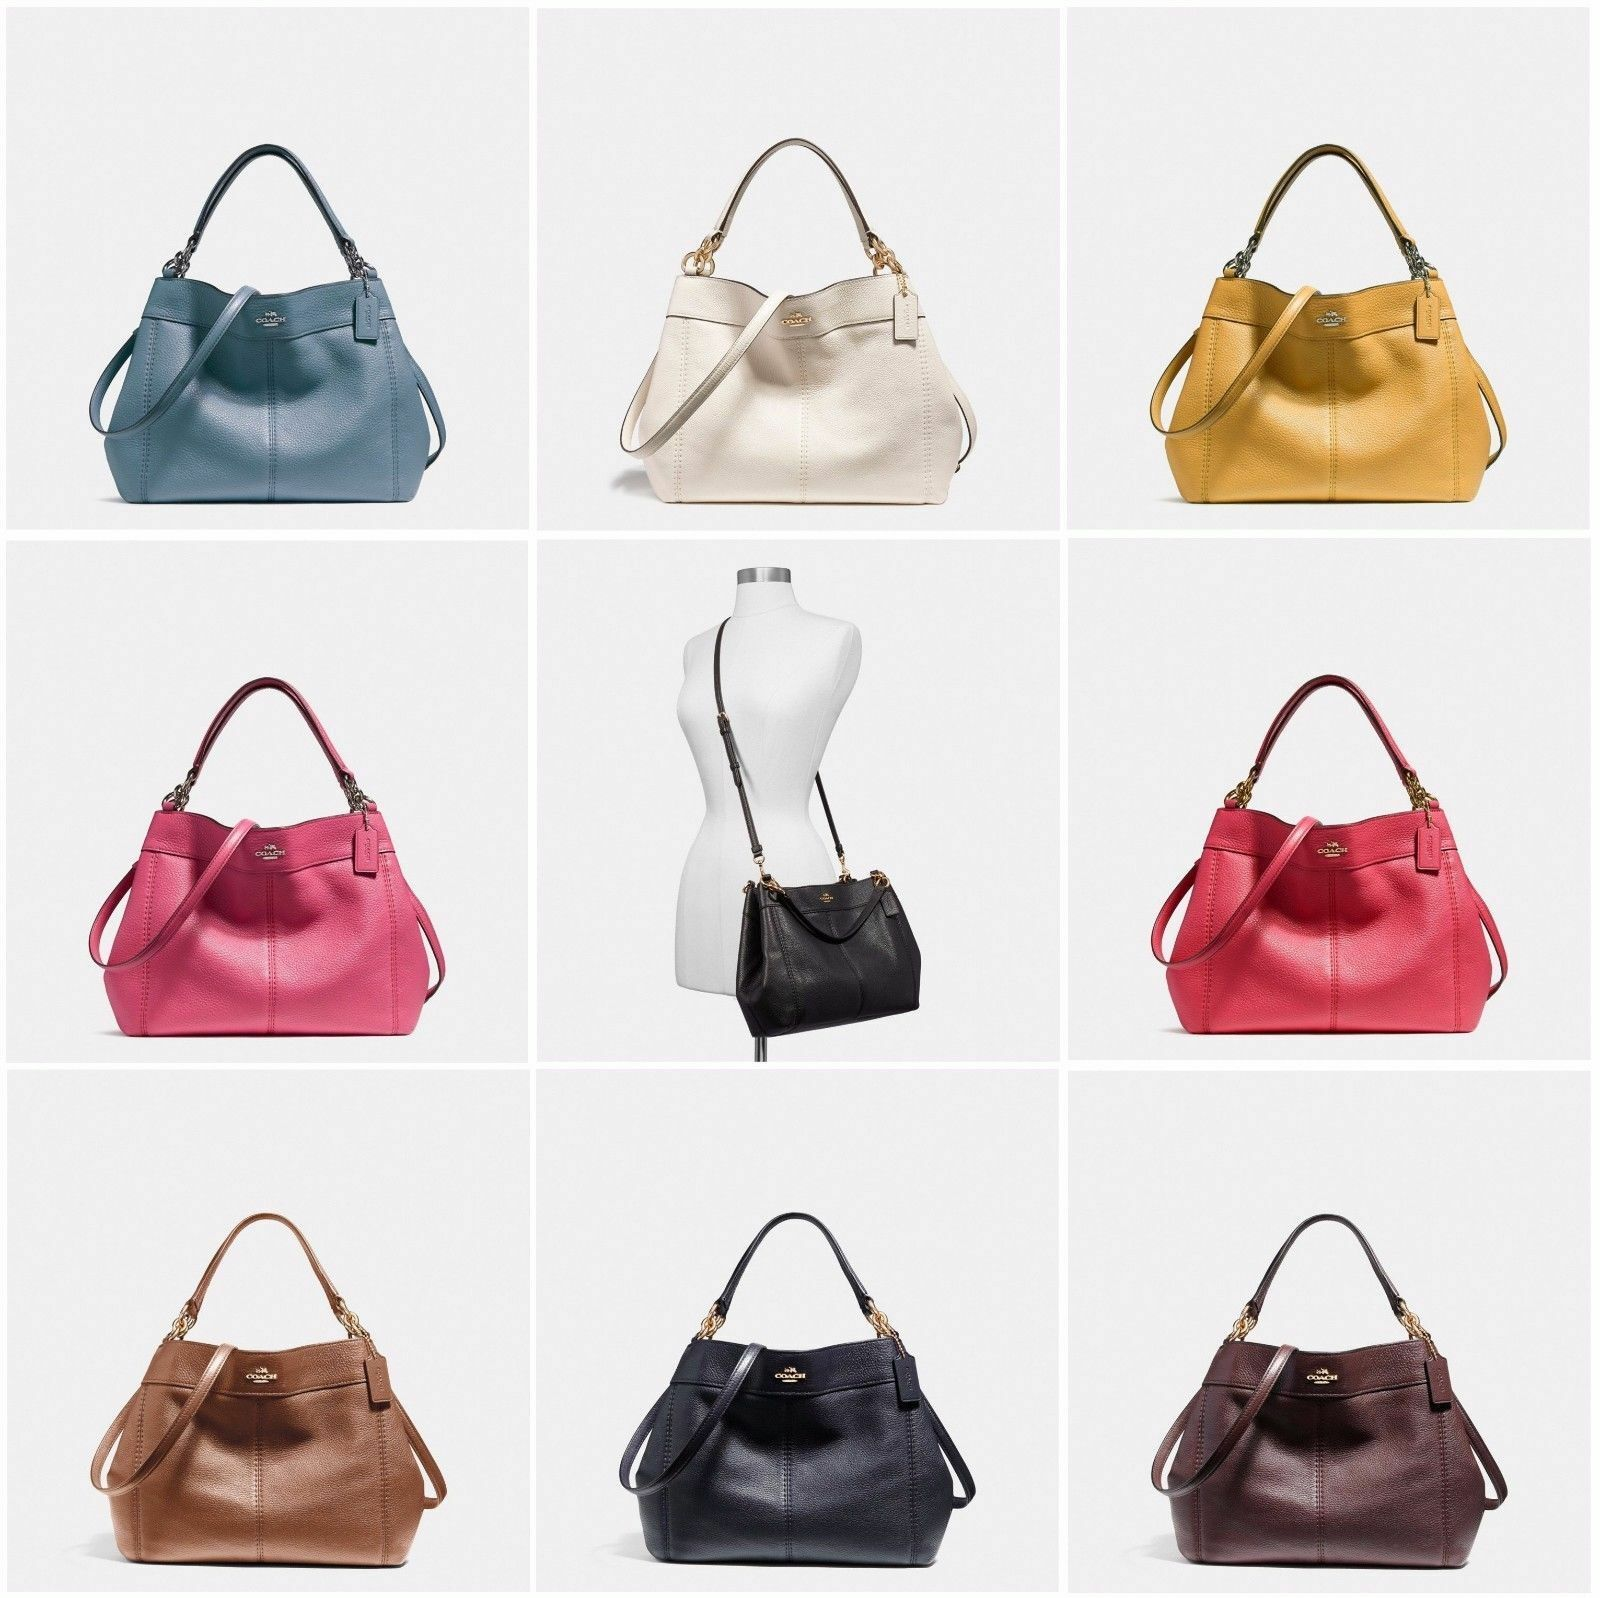 0c138dd60e26 ... ireland new coach f23537 small lexy shoulder bag in pebble leather new  with tags 902ee f2065